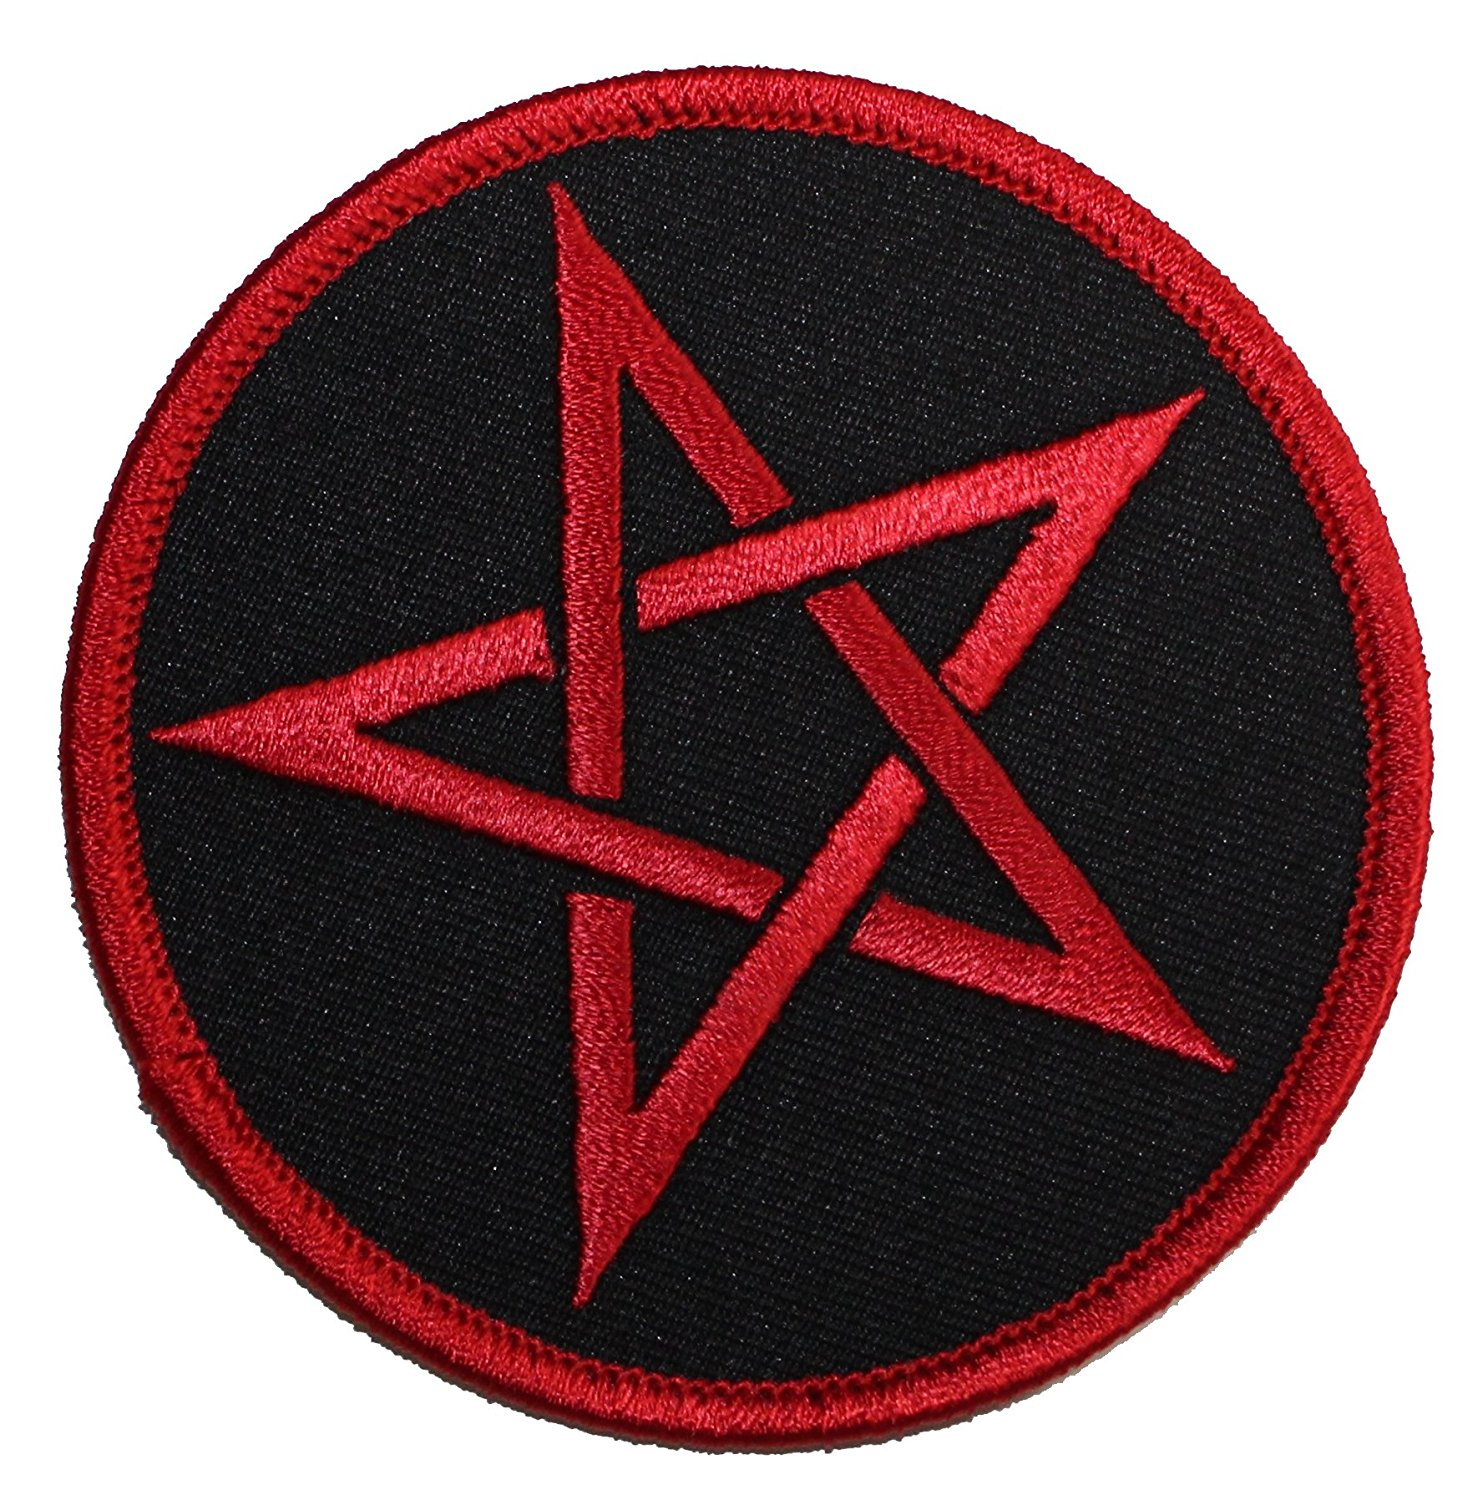 Pentagram Iconic Log PATCH - Officially Licensed Original Artwork, 3' x 3', Iron-On / Sew-On Embroidered Patch